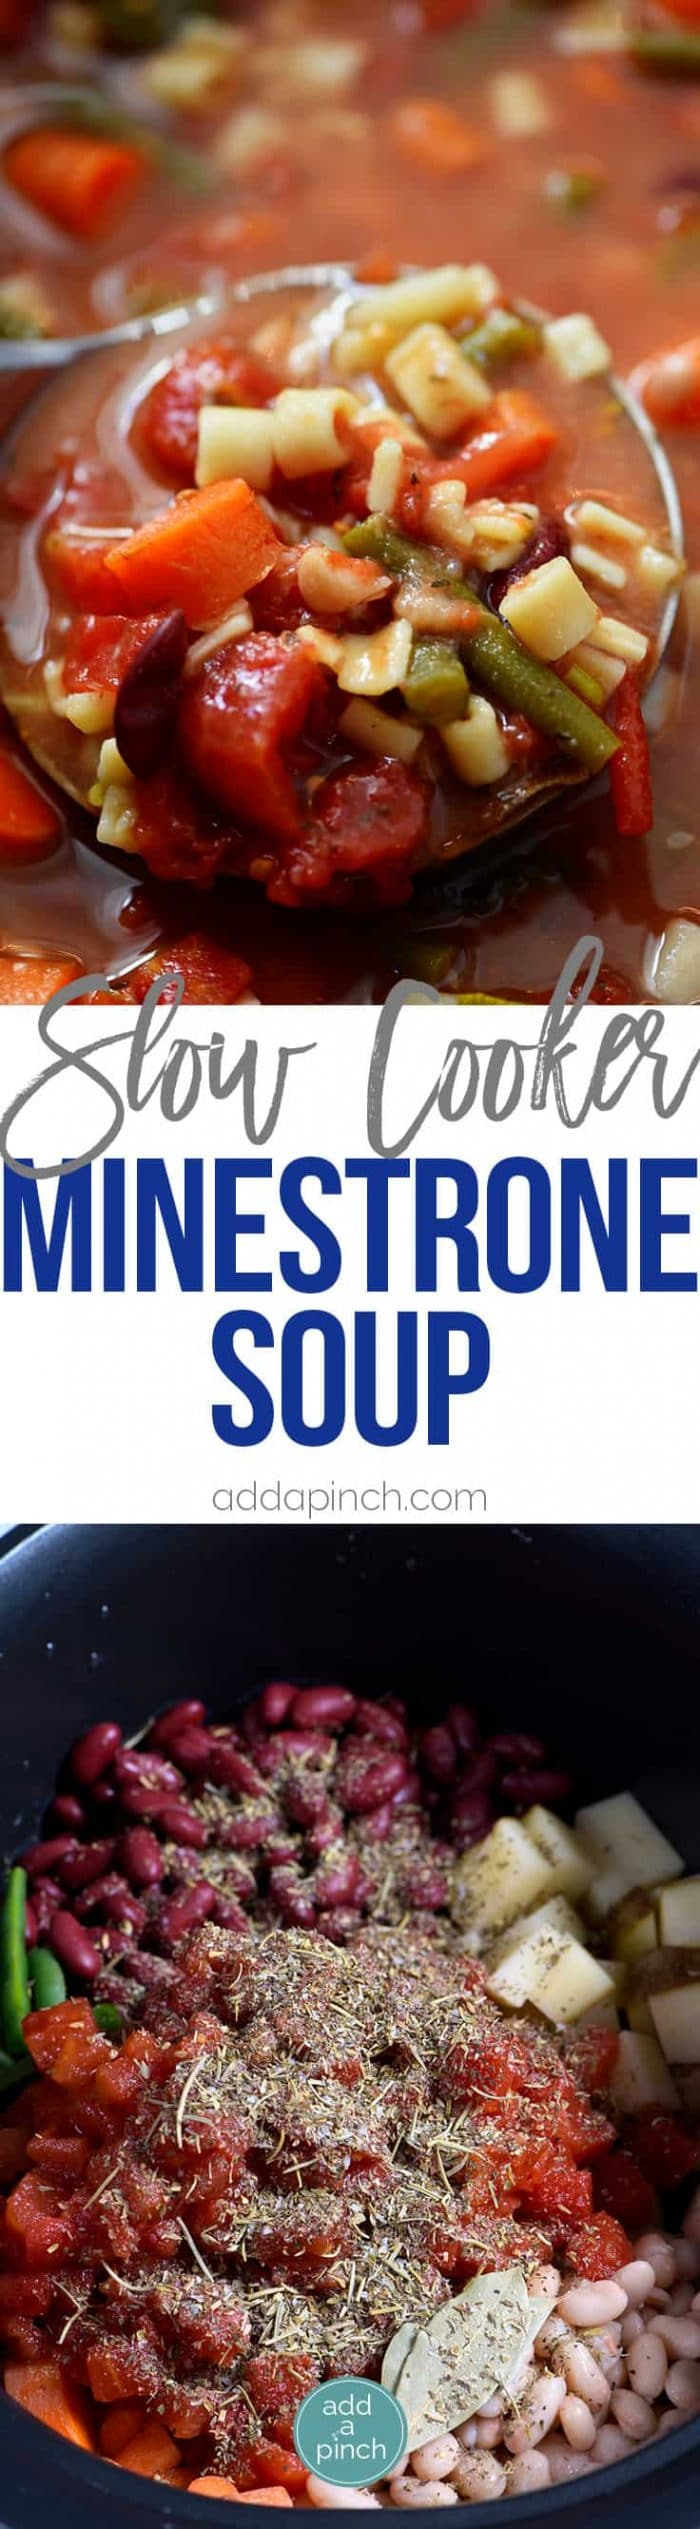 Slow Cooker Minestrone Soup Recipe - Loaded with seasonal vegetables, this minestrone soup is made even easier in this slow cooker recipe! A definite family favorite! // addapinch.com